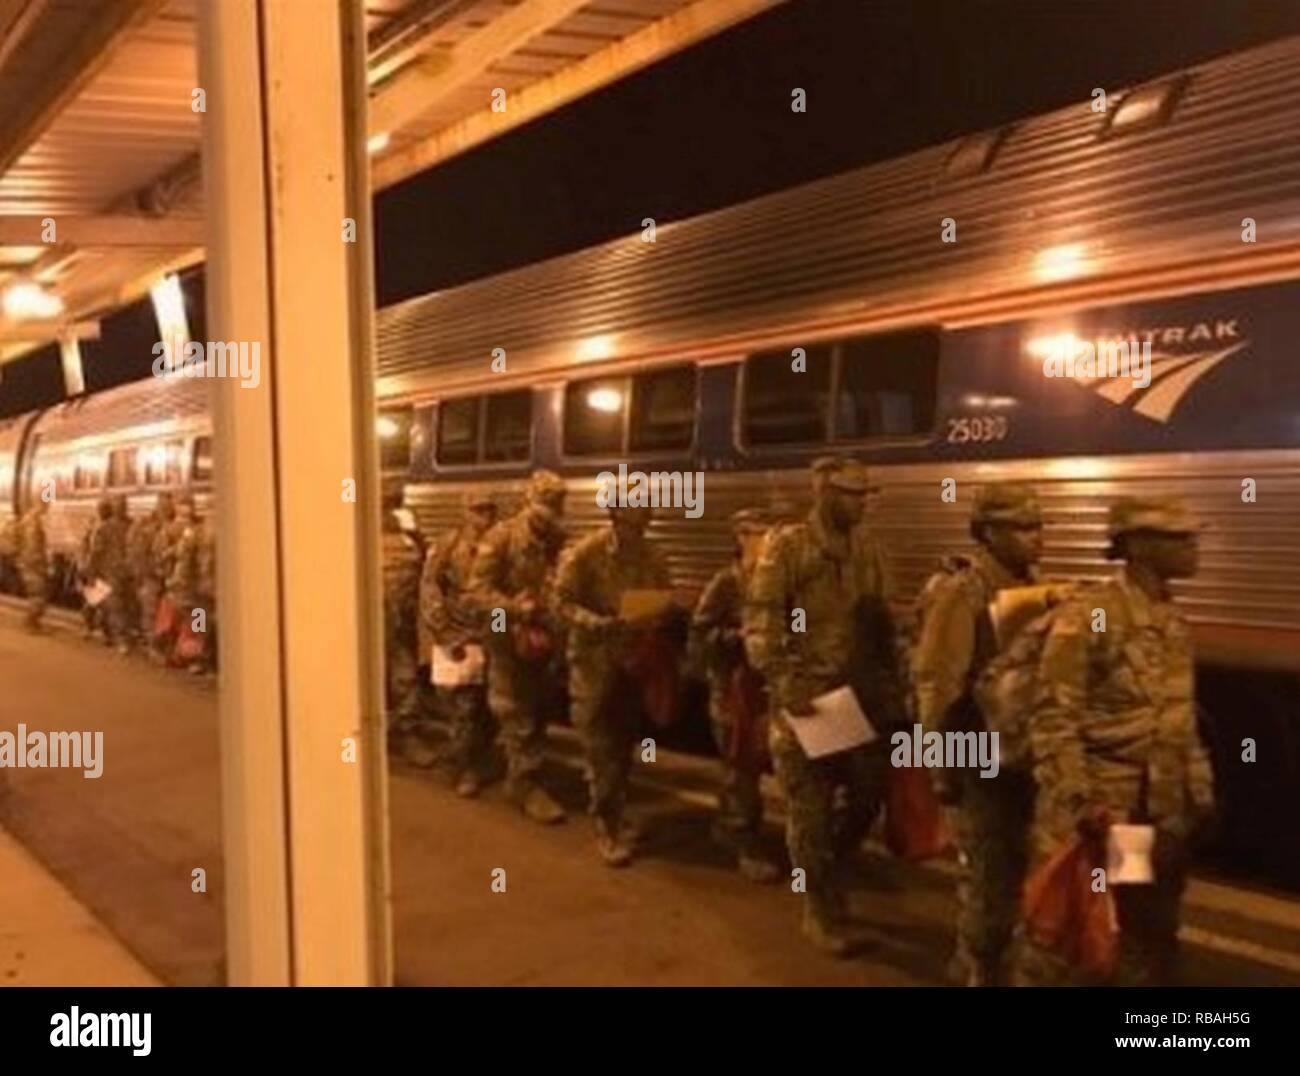 Soldiers training at Fort Jackson, S.C., prepare to board a train at the Columbia Amtrak station for Holiday Block Leave (HBL) early morning Dec. 19, 2018. The 369th Adjutant General Battalion, U.S. Army Soldier Support Institute, provided the mission command at the rail station. Each year during the Christmas and New Year holiday season, U.S. Army Combined Arms Support Command AIT schools conduct HBL to give military students and cadre downtime. - Stock Image